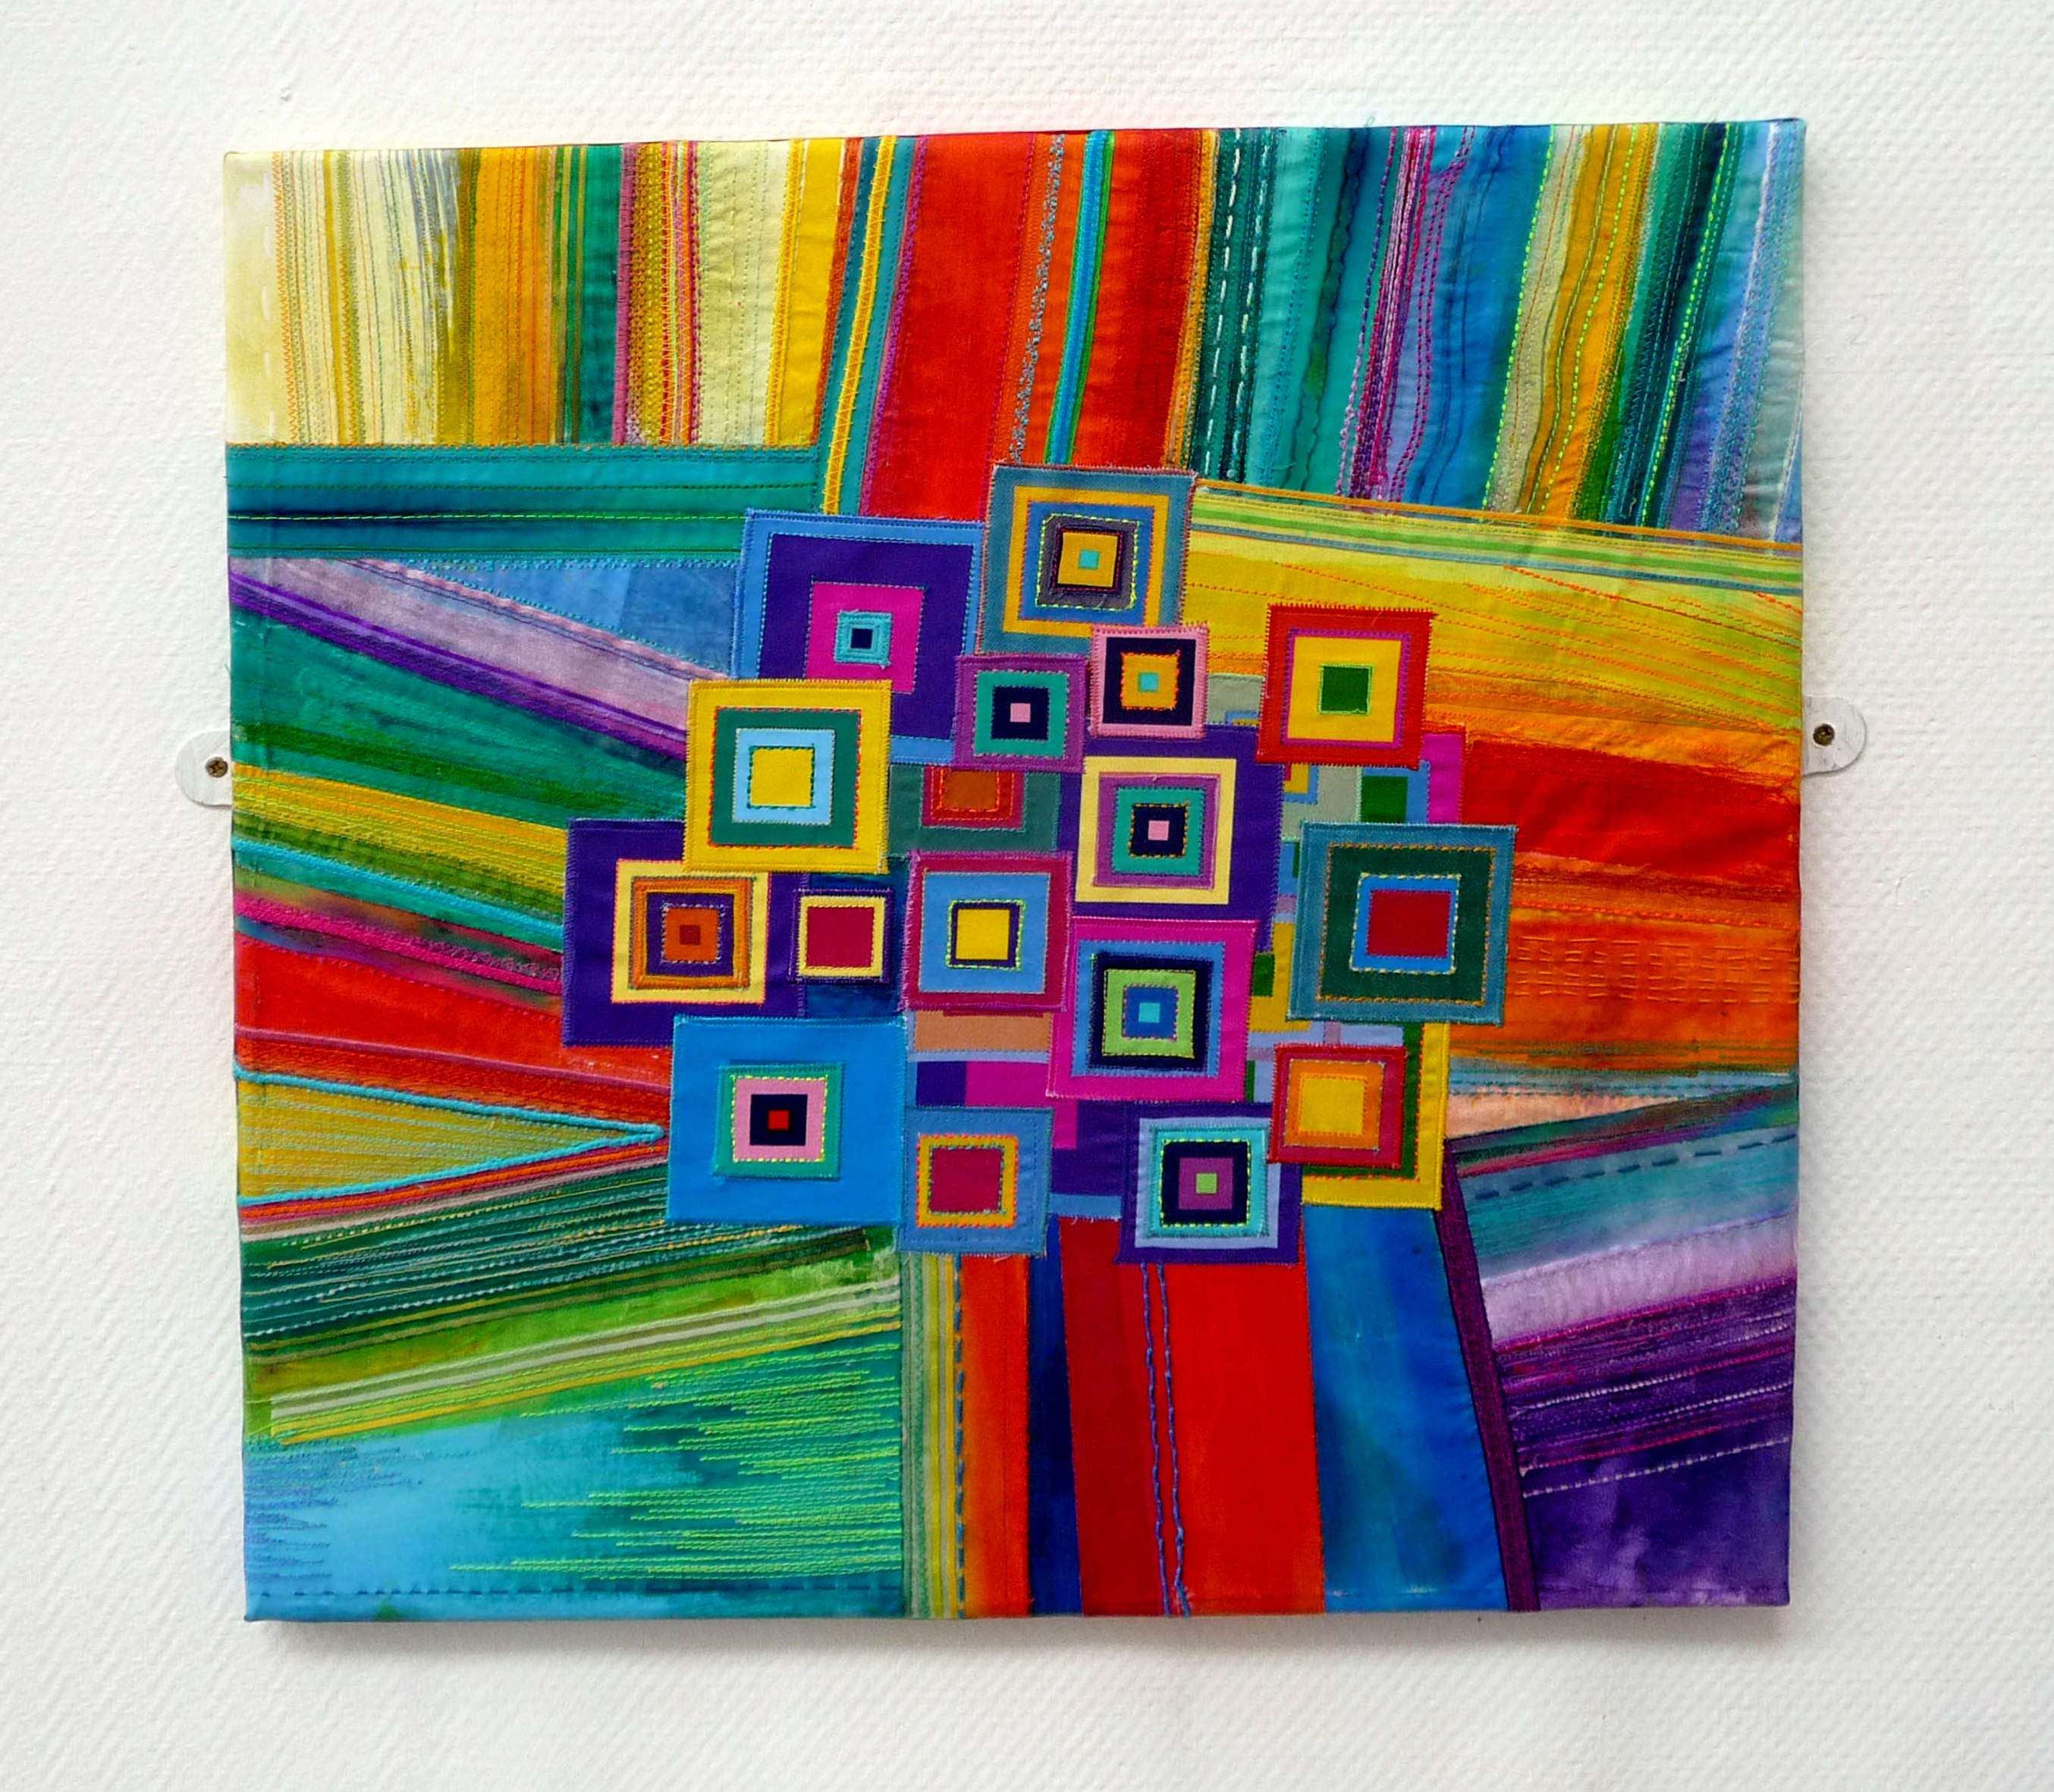 SQUARE DANCE by Beryl Waterfield, mixed media with stitch